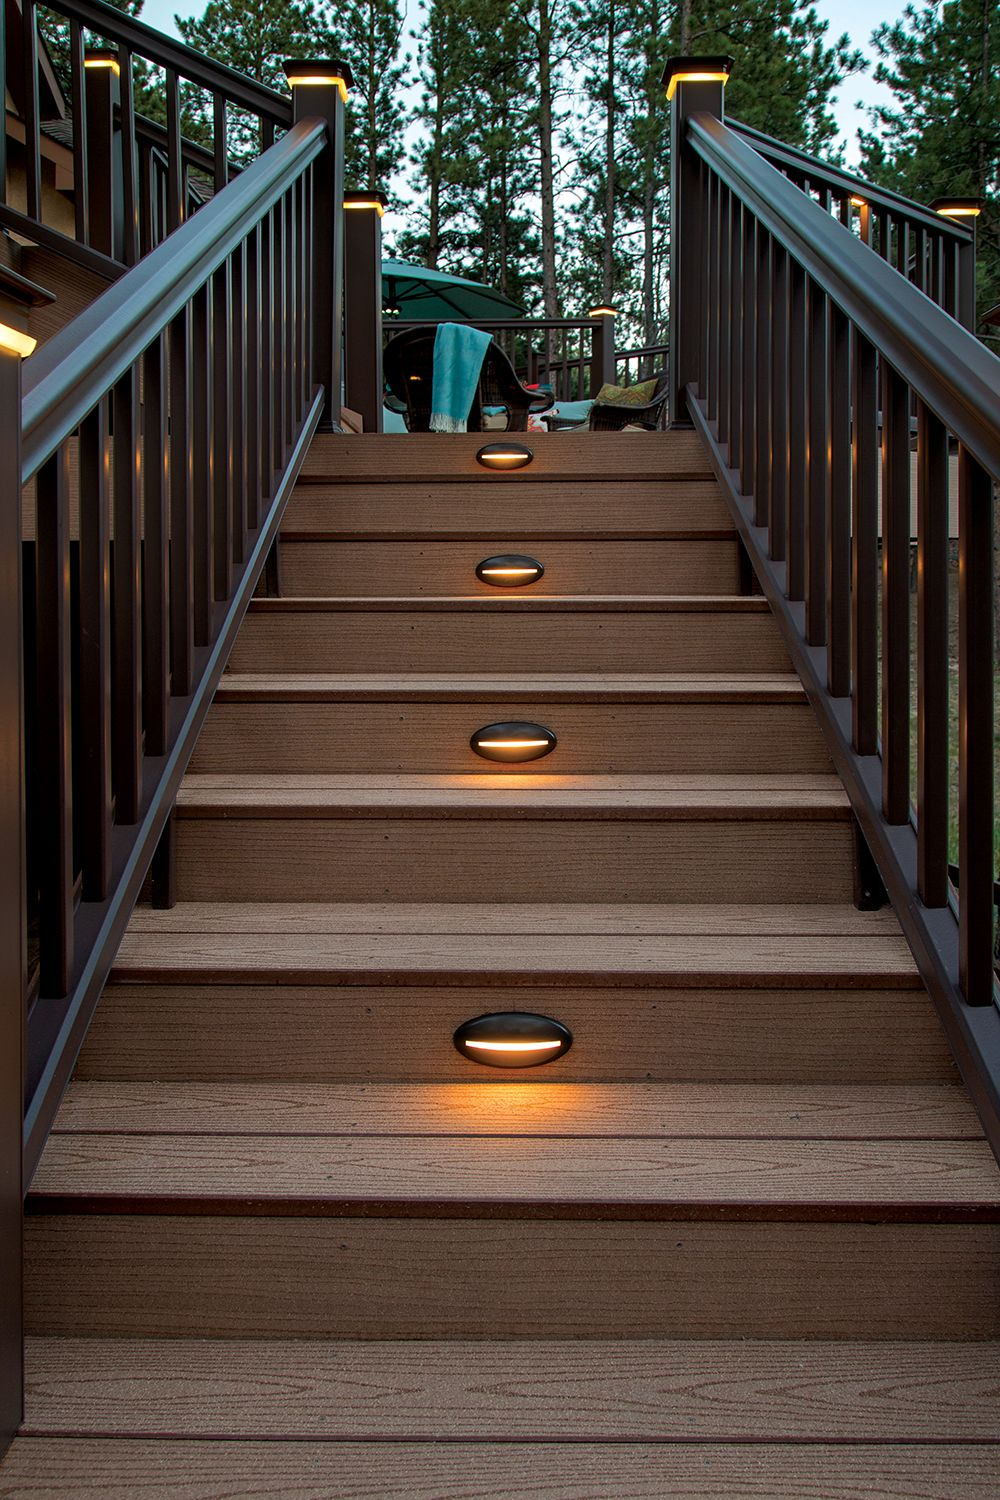 deck stair lighting ideas. Stair Lights Not Only Do You Want To Enjoy Your Deck, But It Safely . At All Hours Of The Day Or Night. TimberTech\u0027s Riser Lights, Positioned Deck Lighting Ideas L